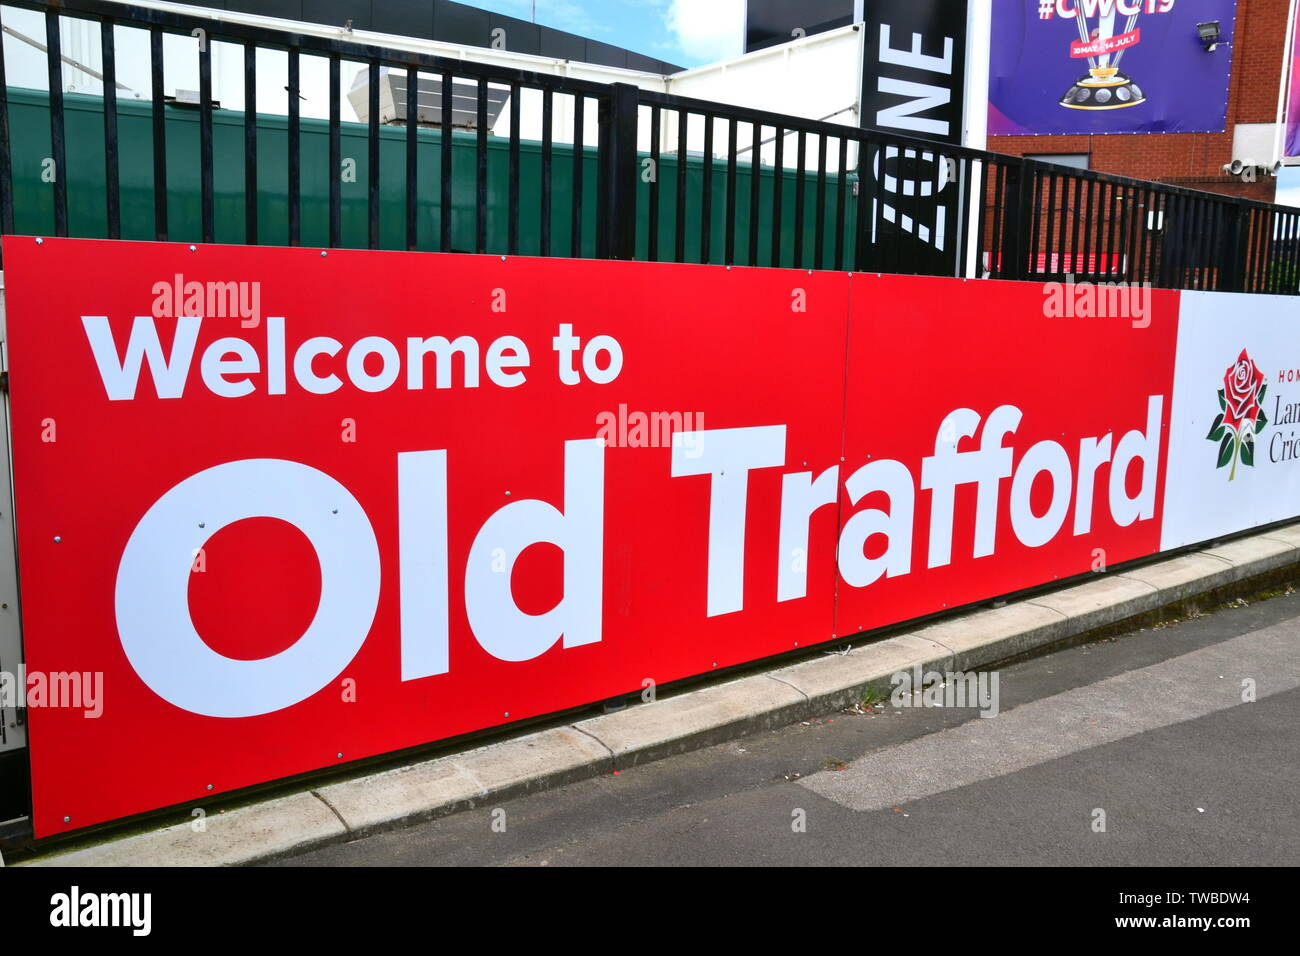 Welcome sign at Lancashire Cricket Club, Old Trafford, Manchester. The 2019  International Cricket Council (ICC) Cricket World Cup is being hosted by England and Wales from May 30th to July 14th, 2019. Six matches are being held at Old Trafford, Manchester, more than at any other venue. - Stock Image